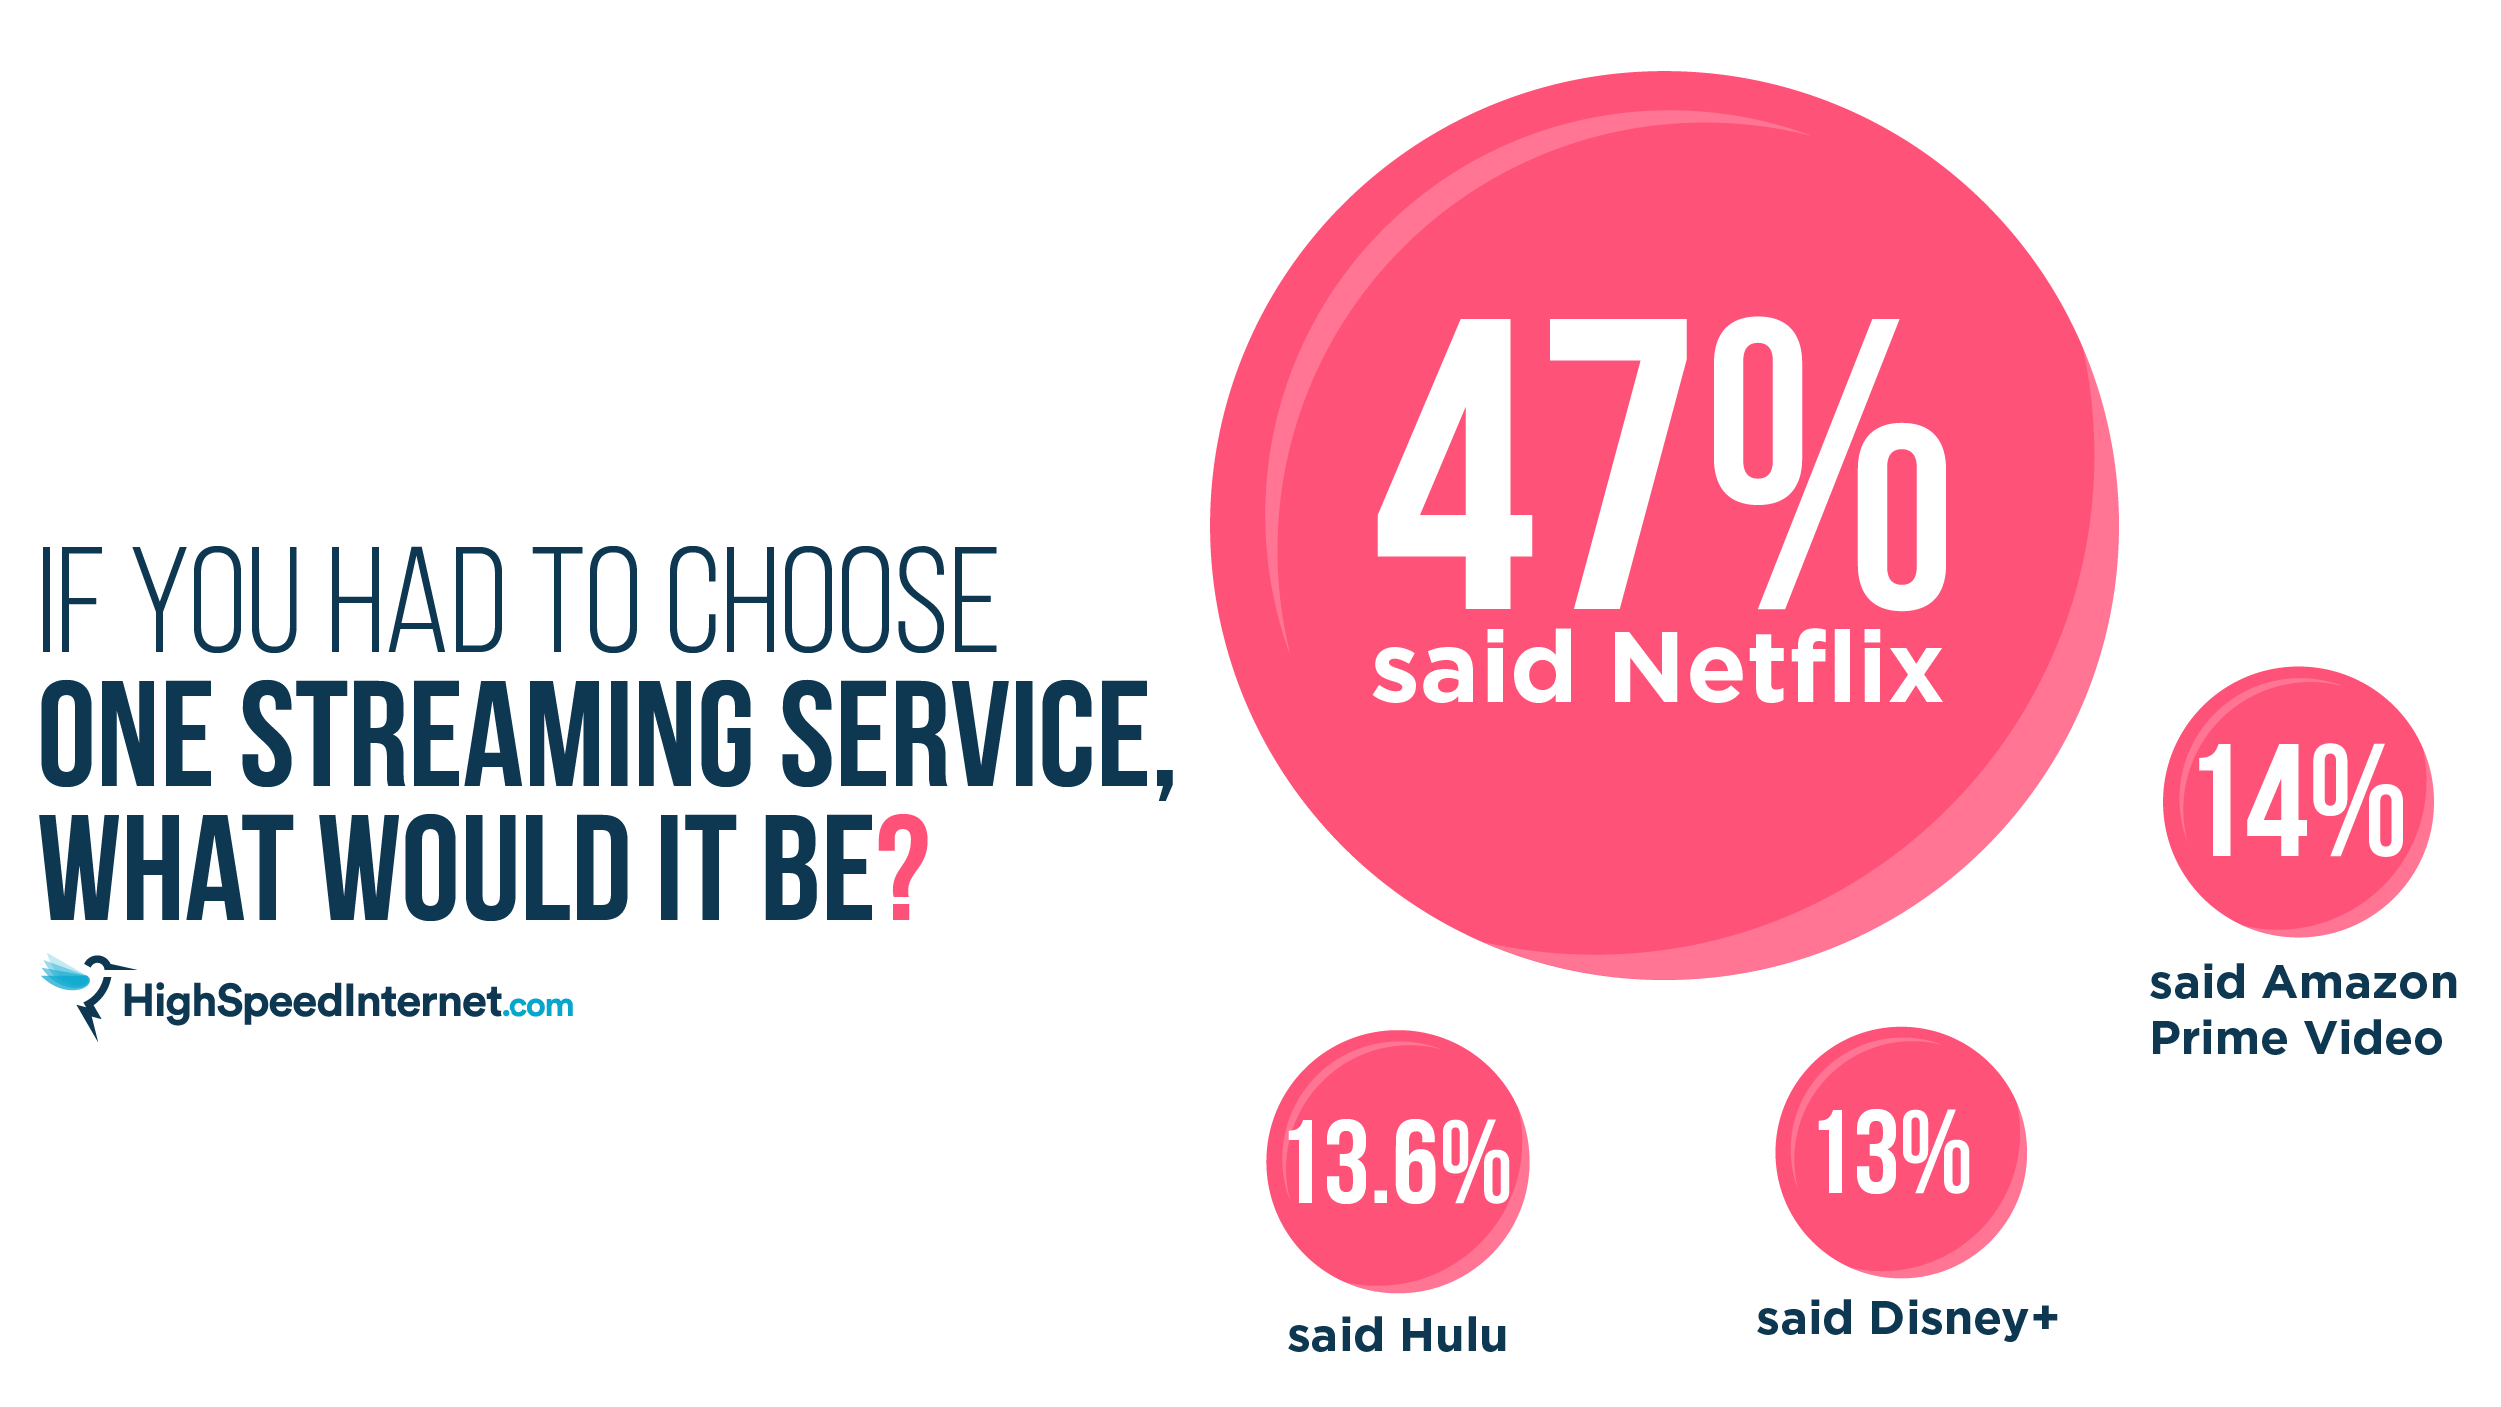 Streaming Survey Results Graphic